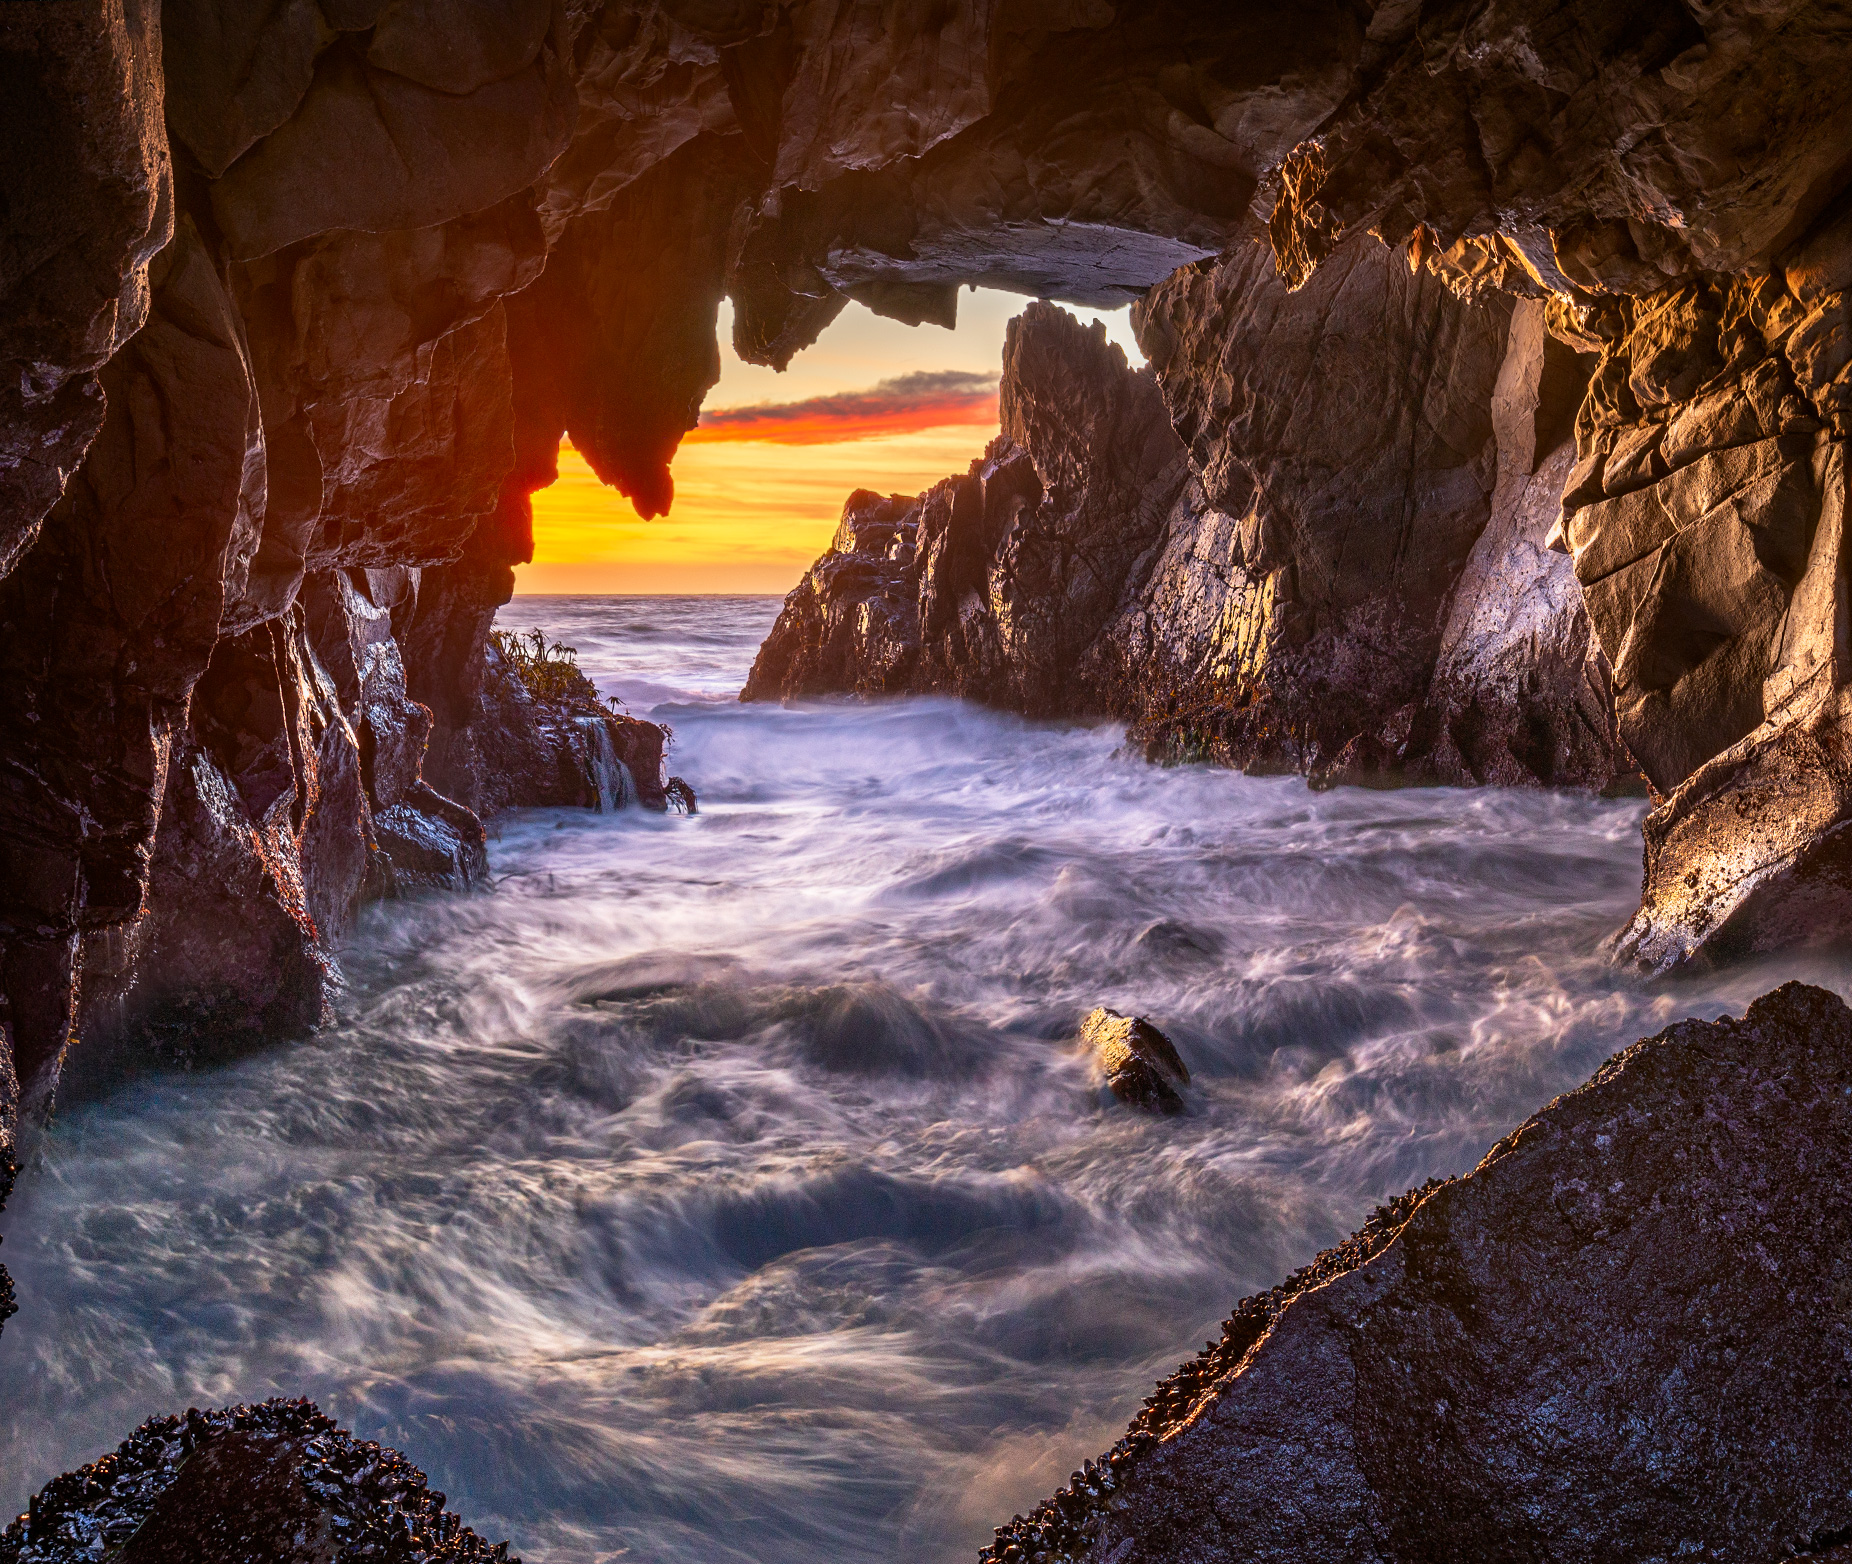 Sunset in one of the sea caves at Pfeiffer Beach, Big Sur.